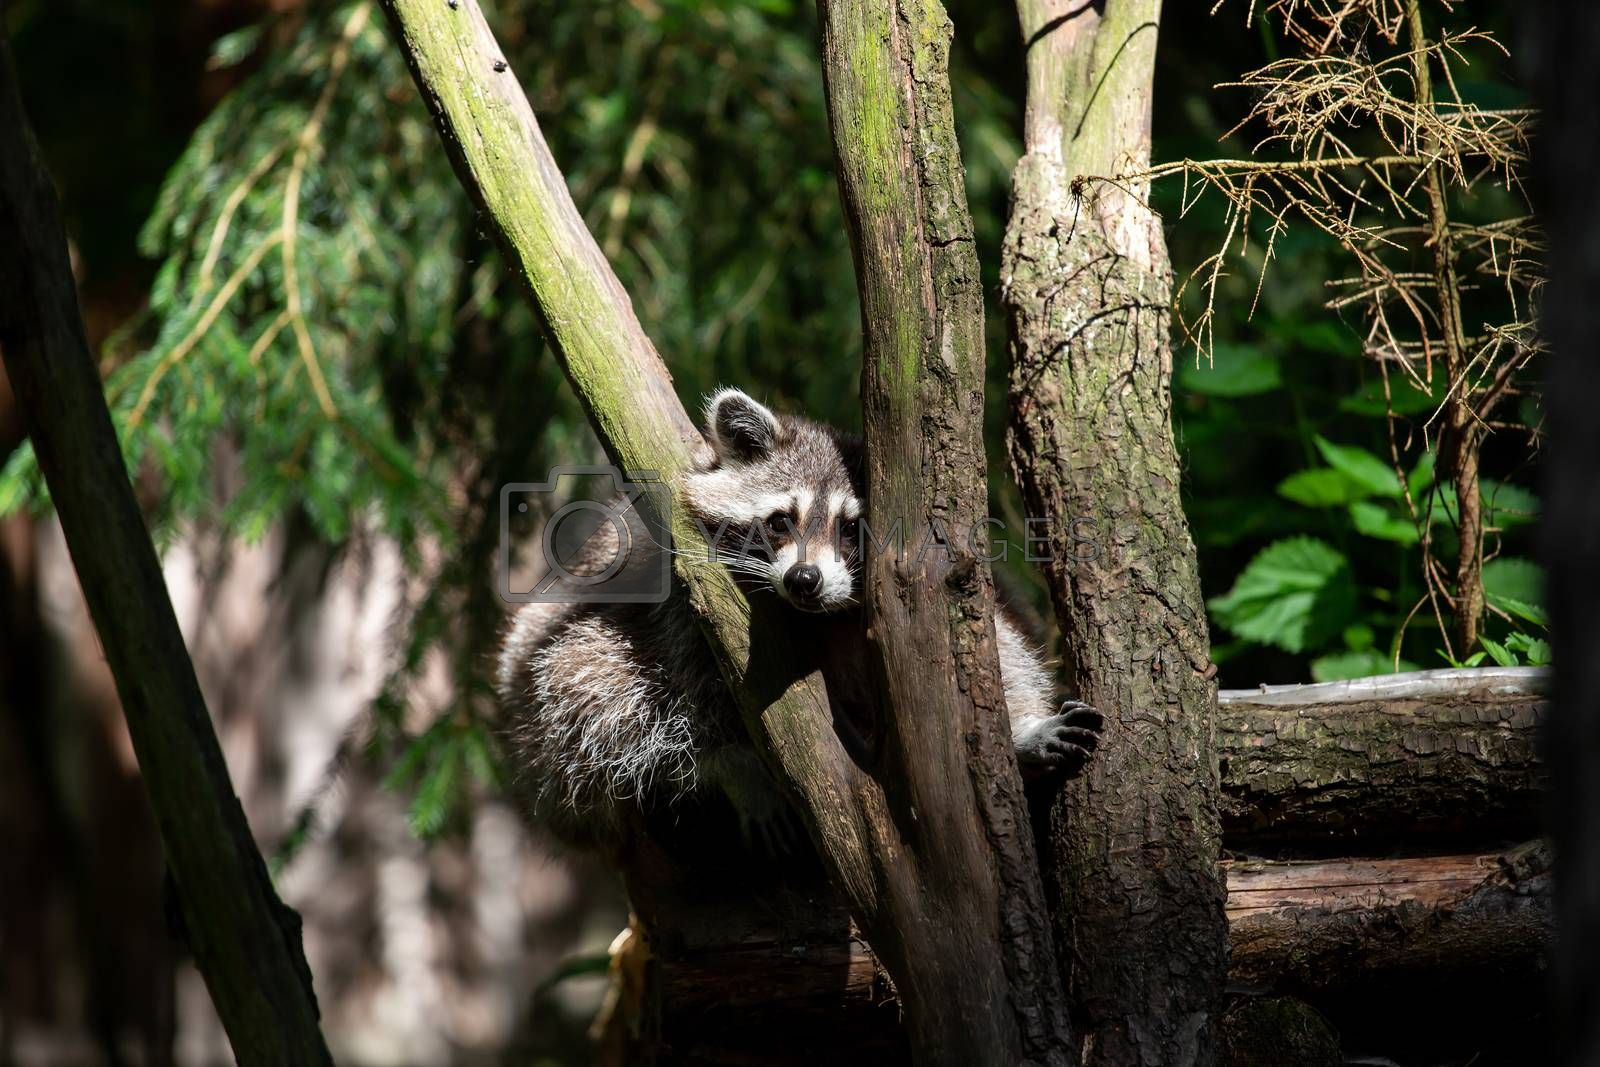 A raccoon looks straight into the camera by Sandra Fotodesign